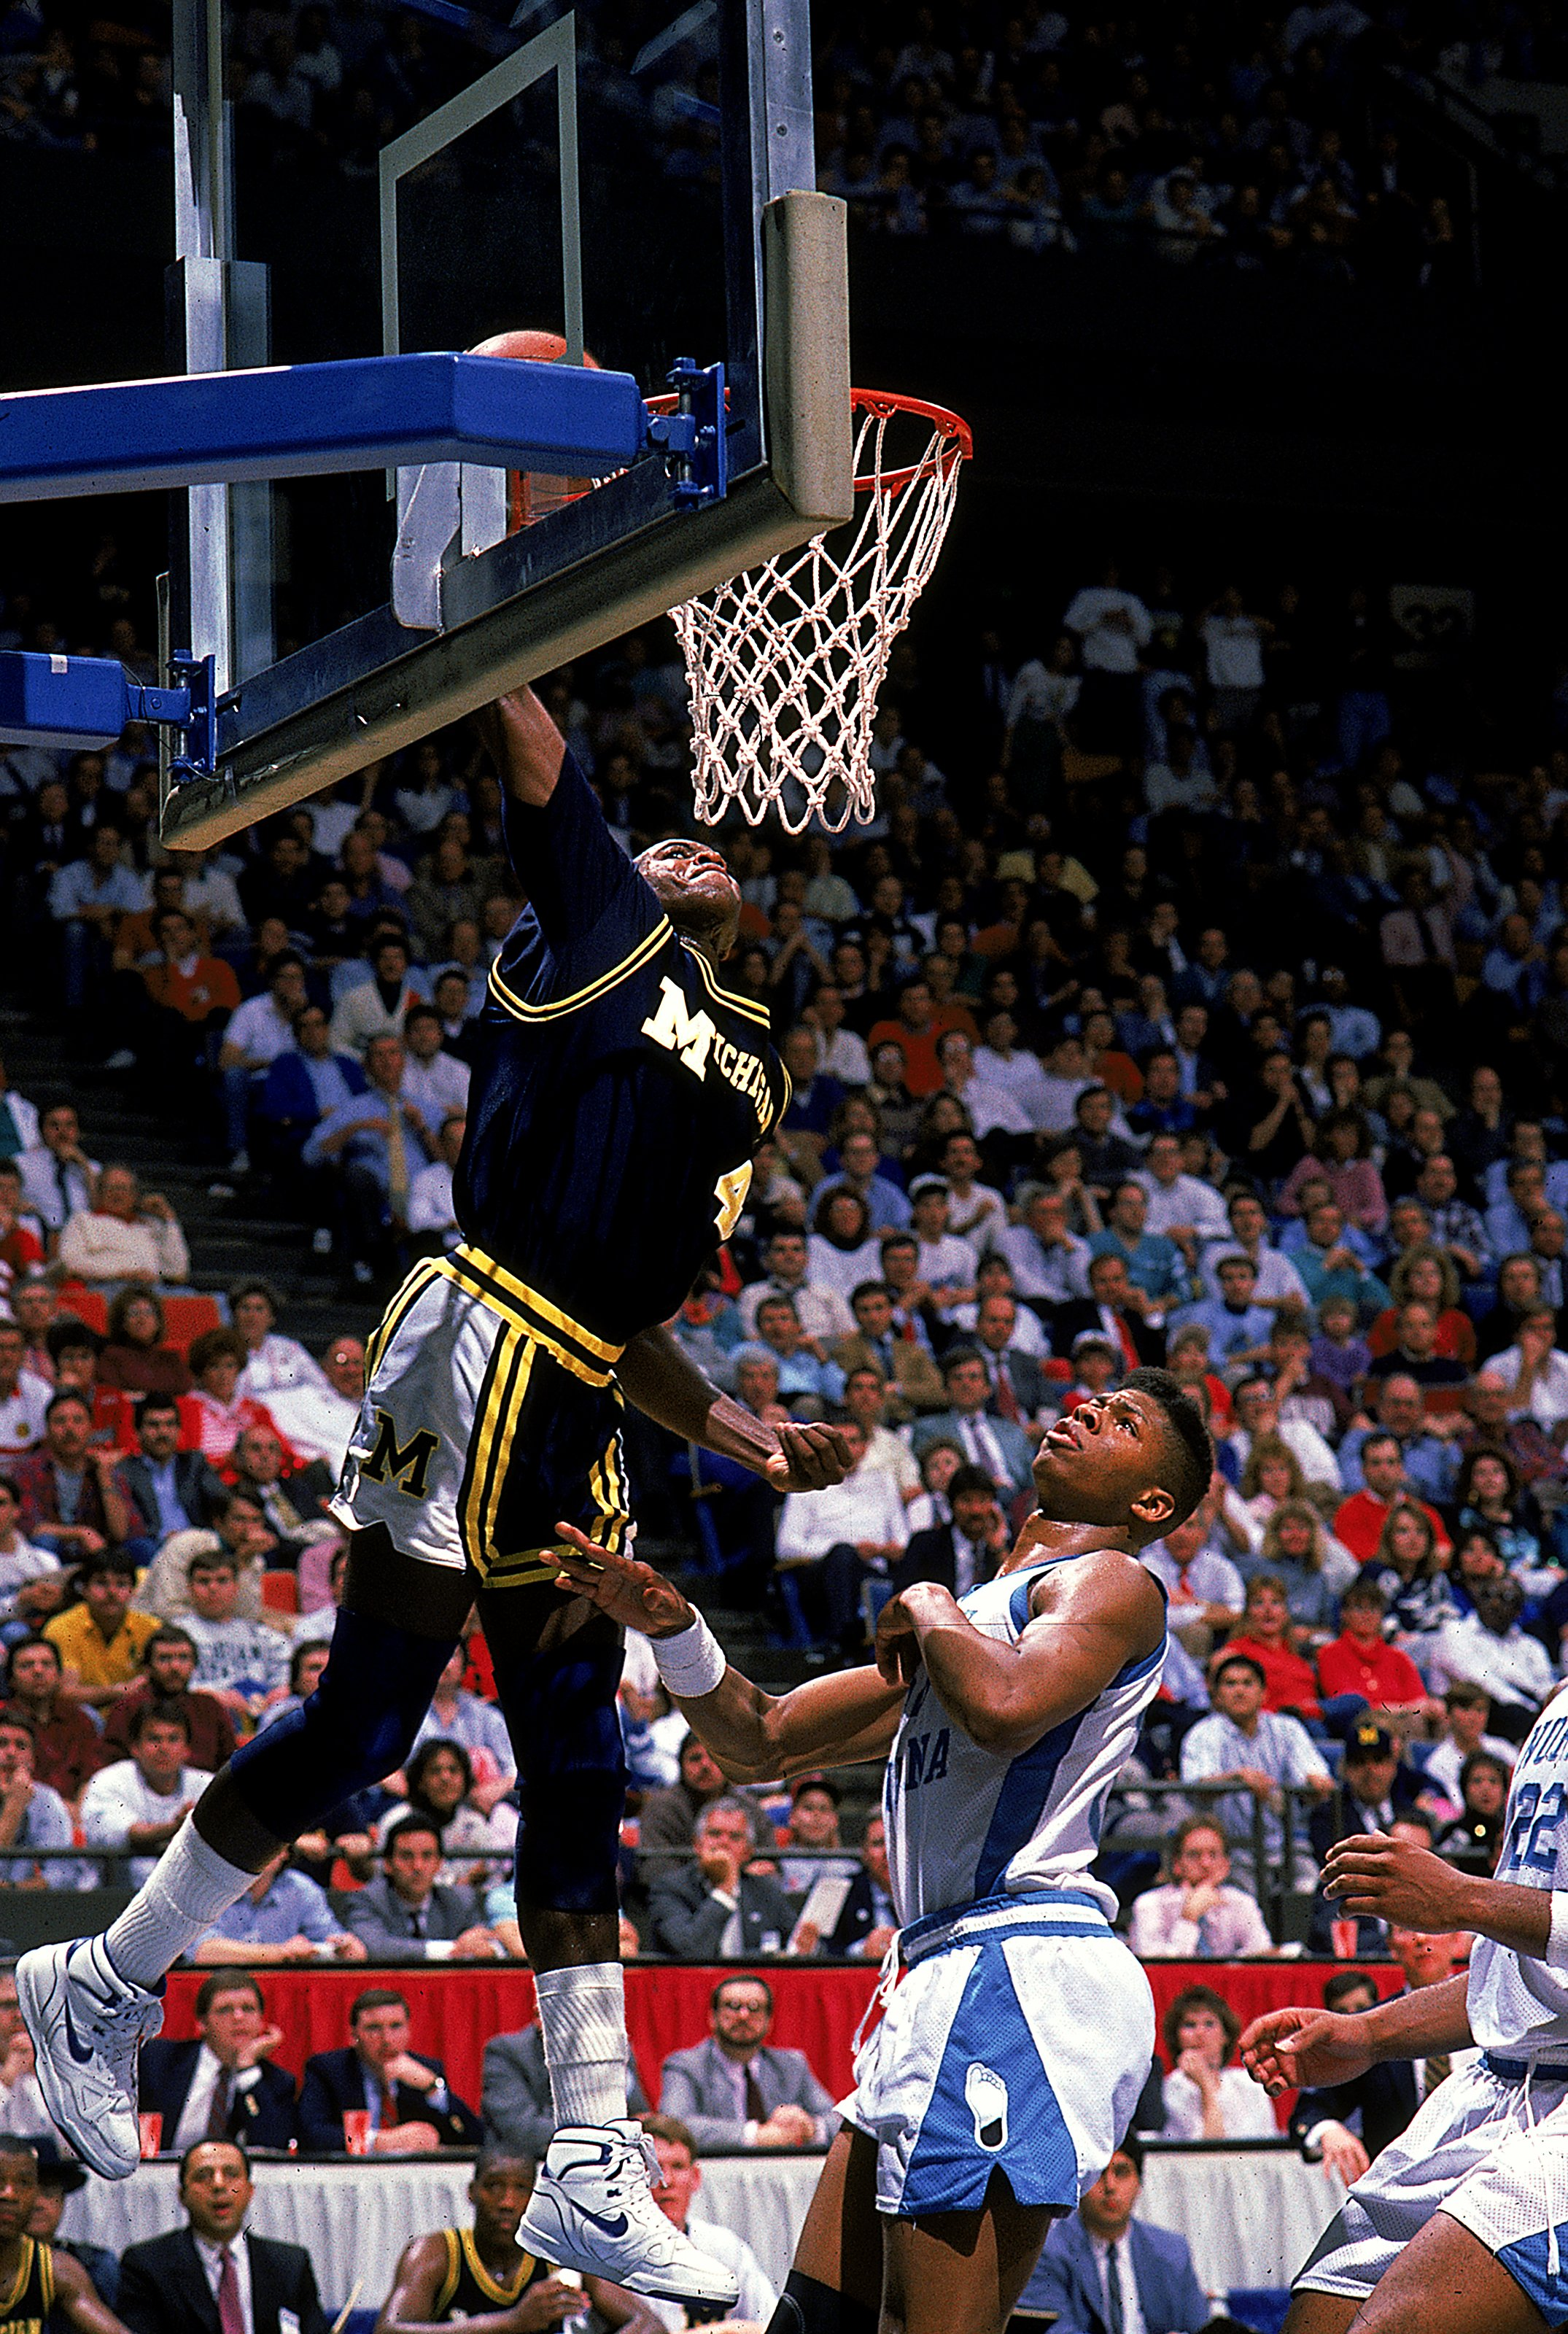 Glen Rice #4 of the University of Michigan Wolverines makes a slam dunk during the game against the North Carolina Tar Heels.